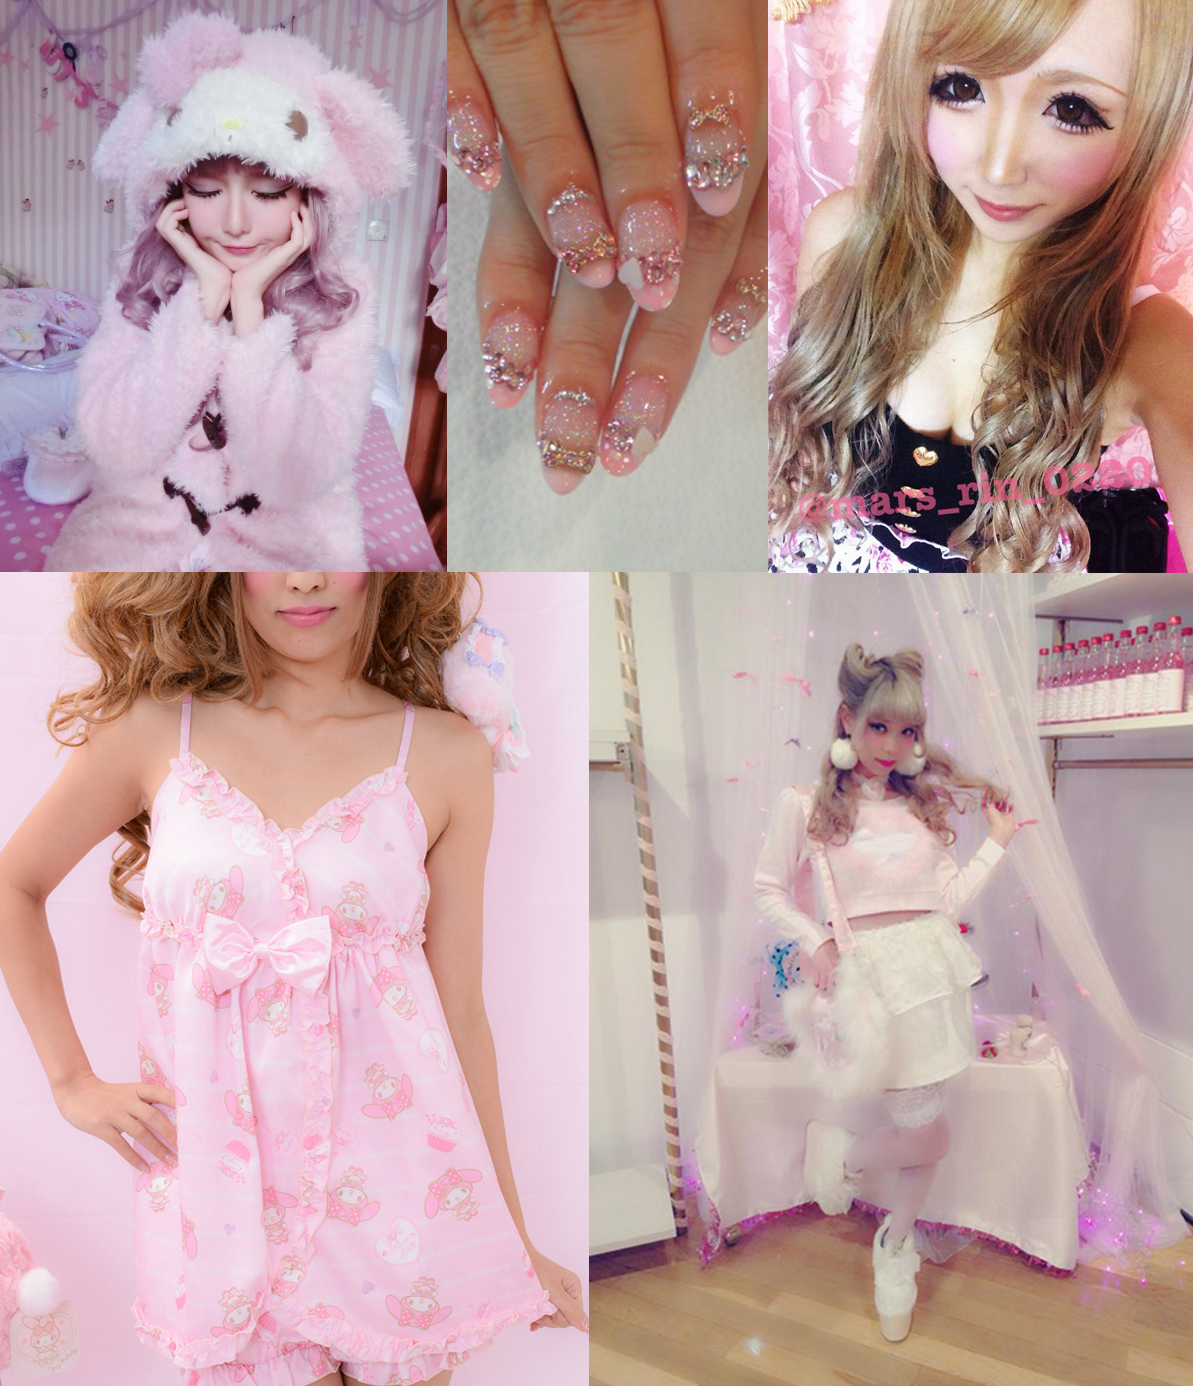 gyaru styles collage